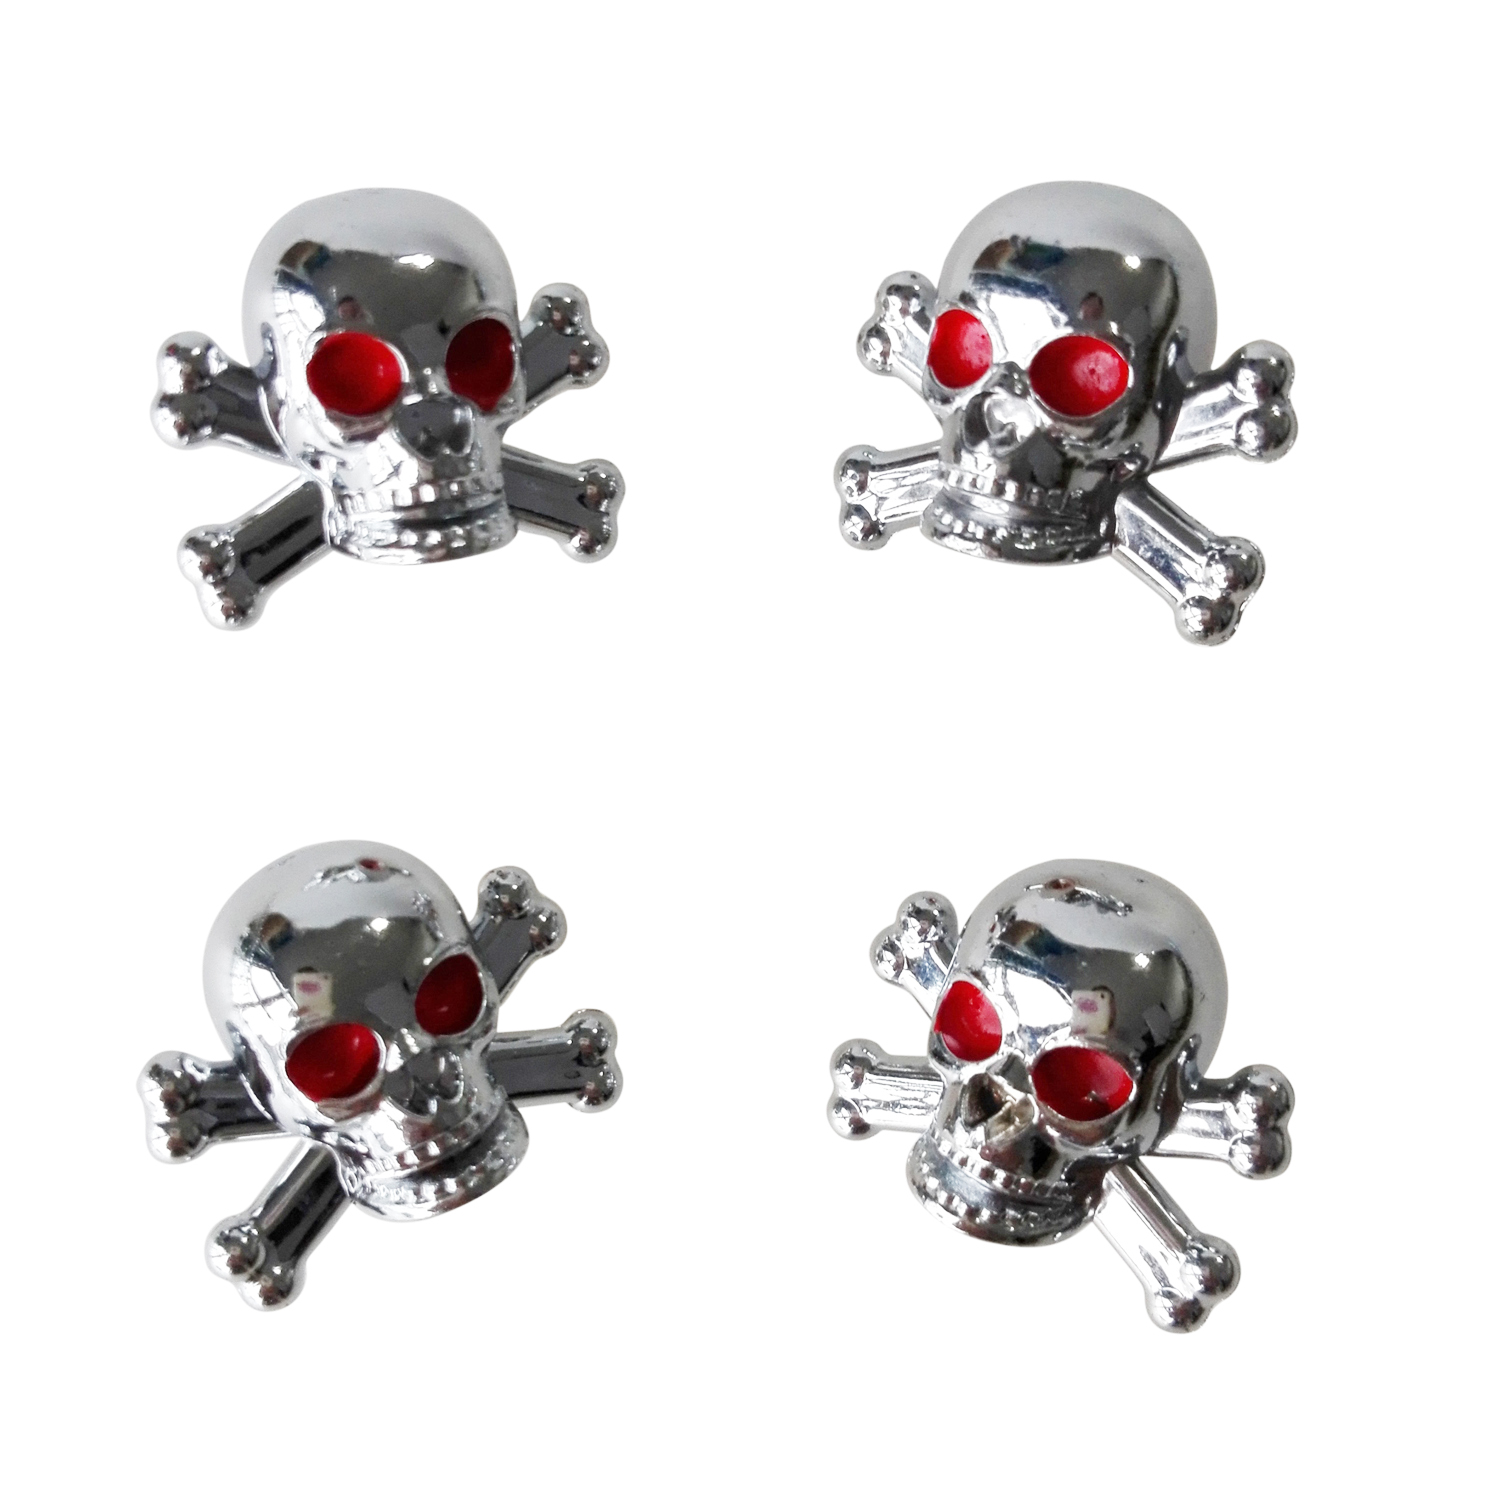 toyl-4pcs-universal-car-truck-bike-skull-tire-air-valve-stem-caps-wheel-rims